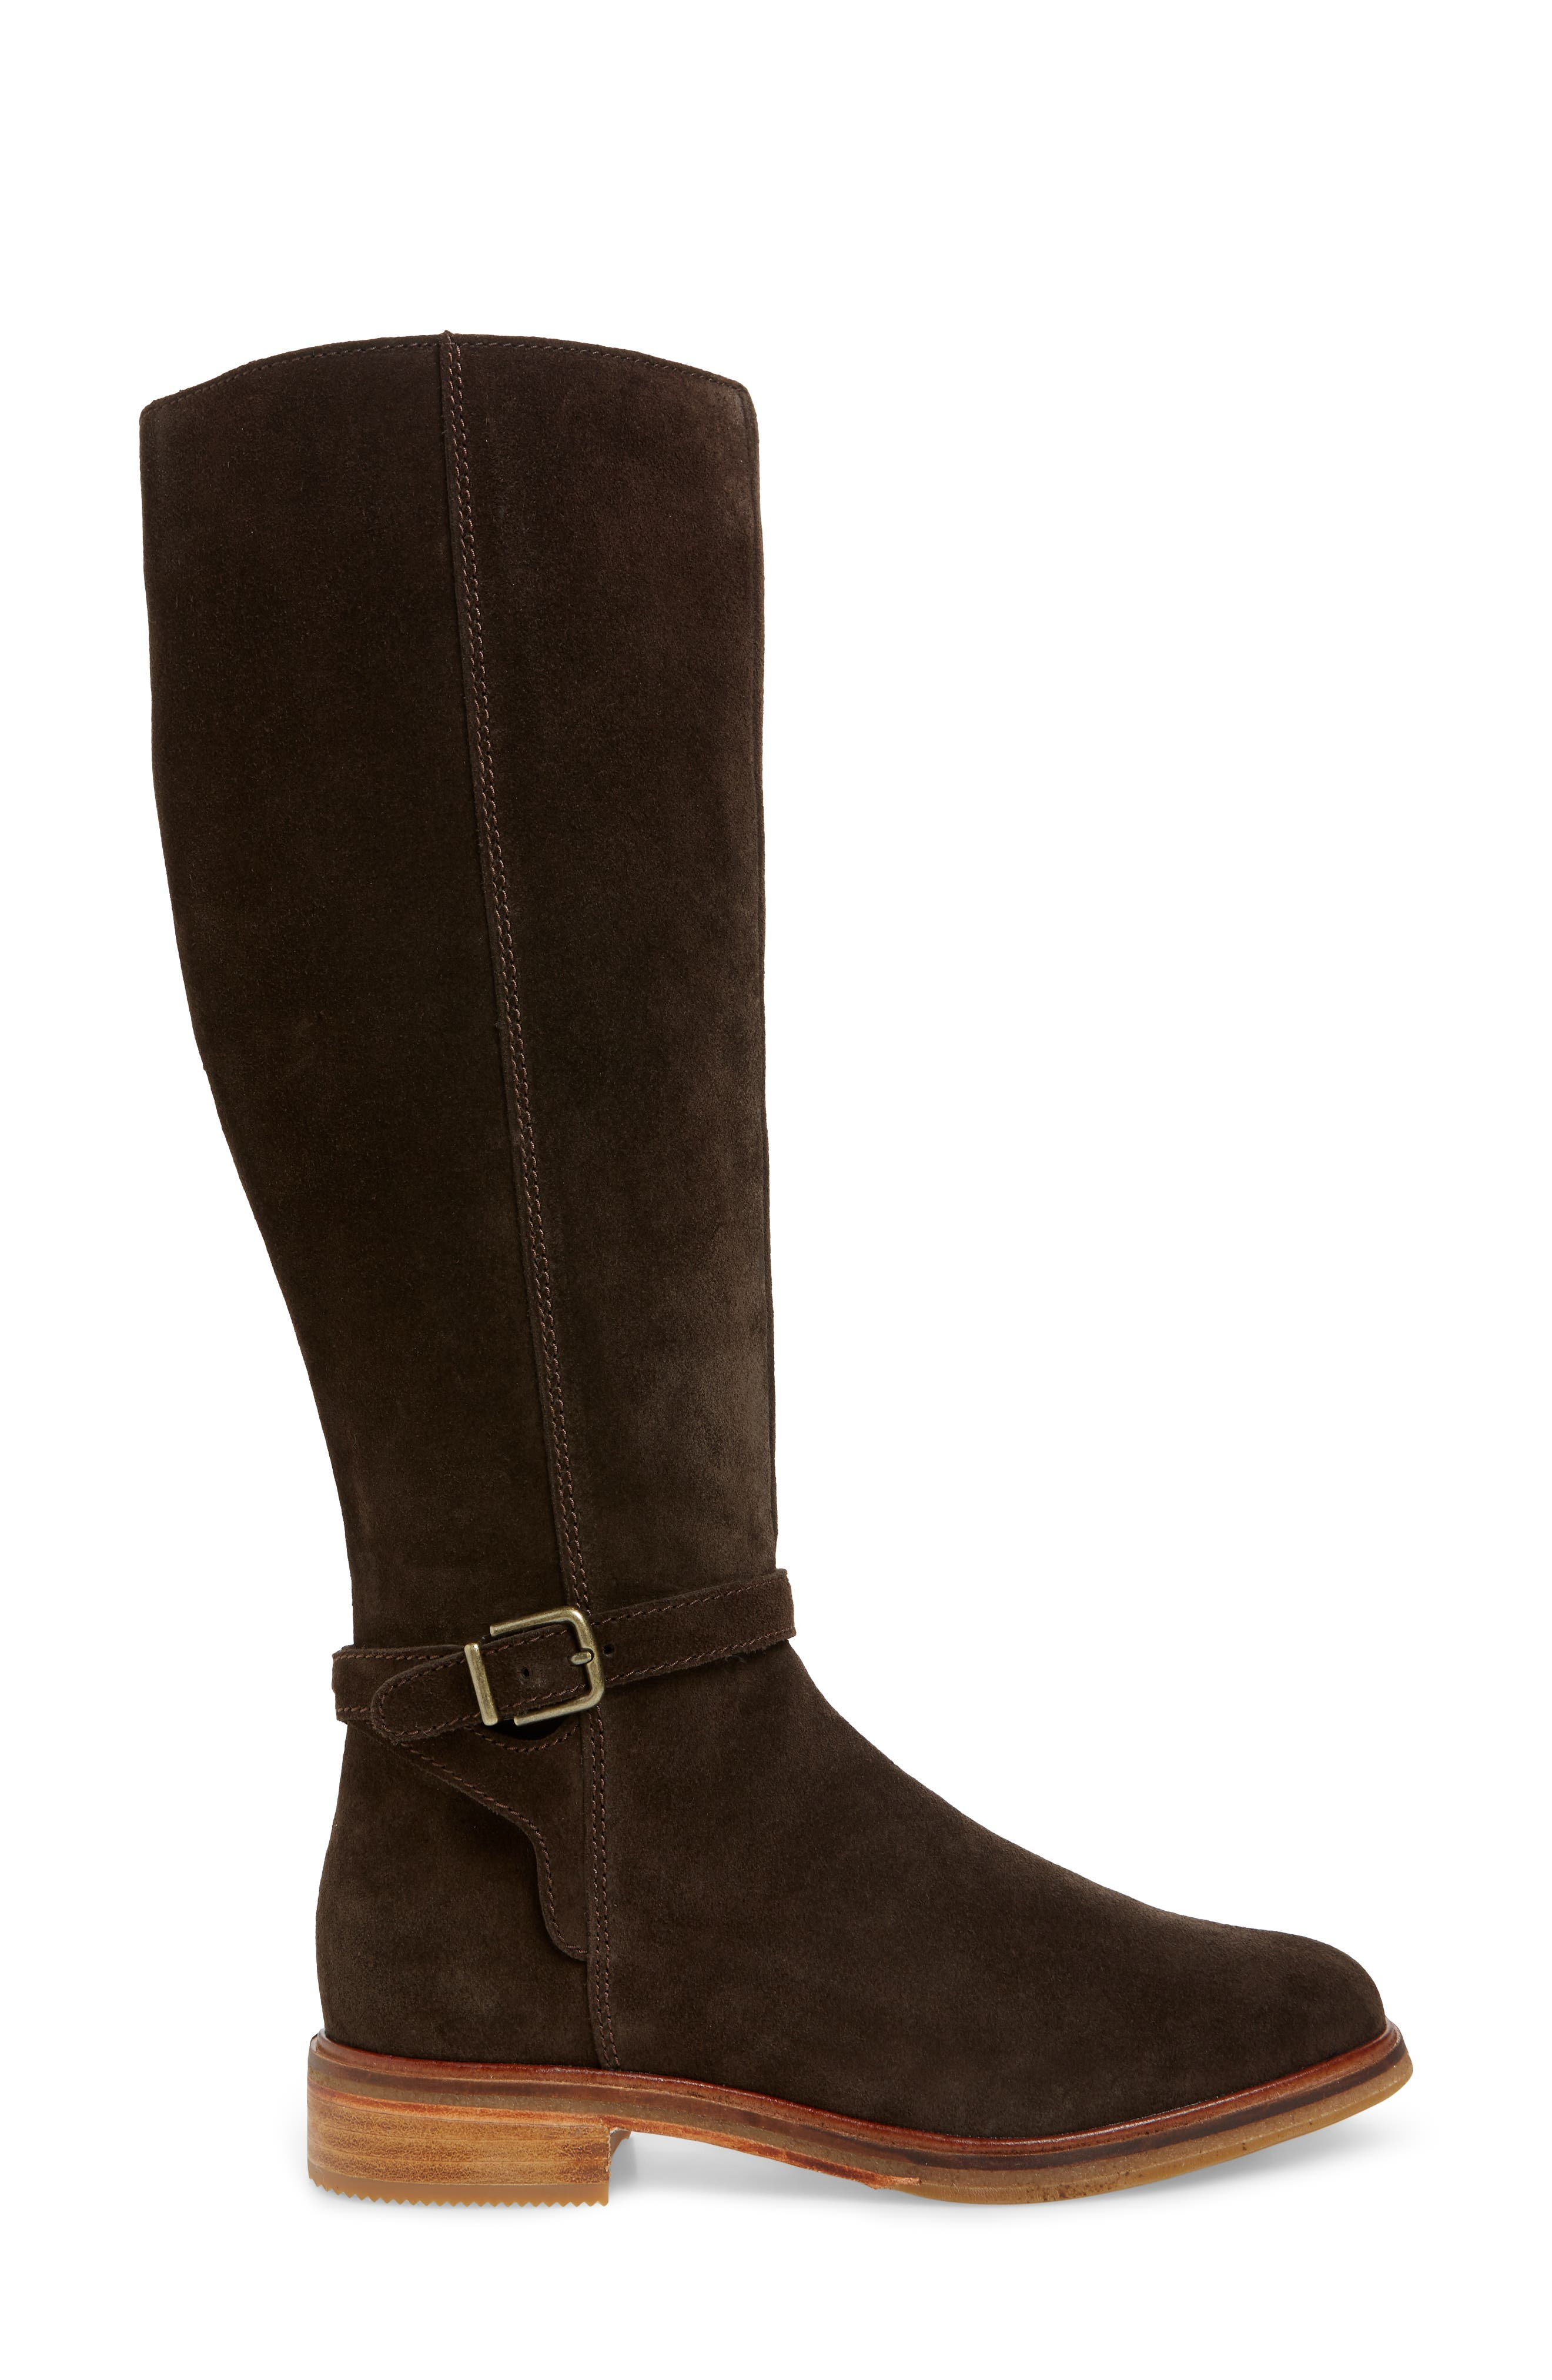 Clarkdale Clad Boot,                             Alternate thumbnail 3, color,                             BROWN SUEDE